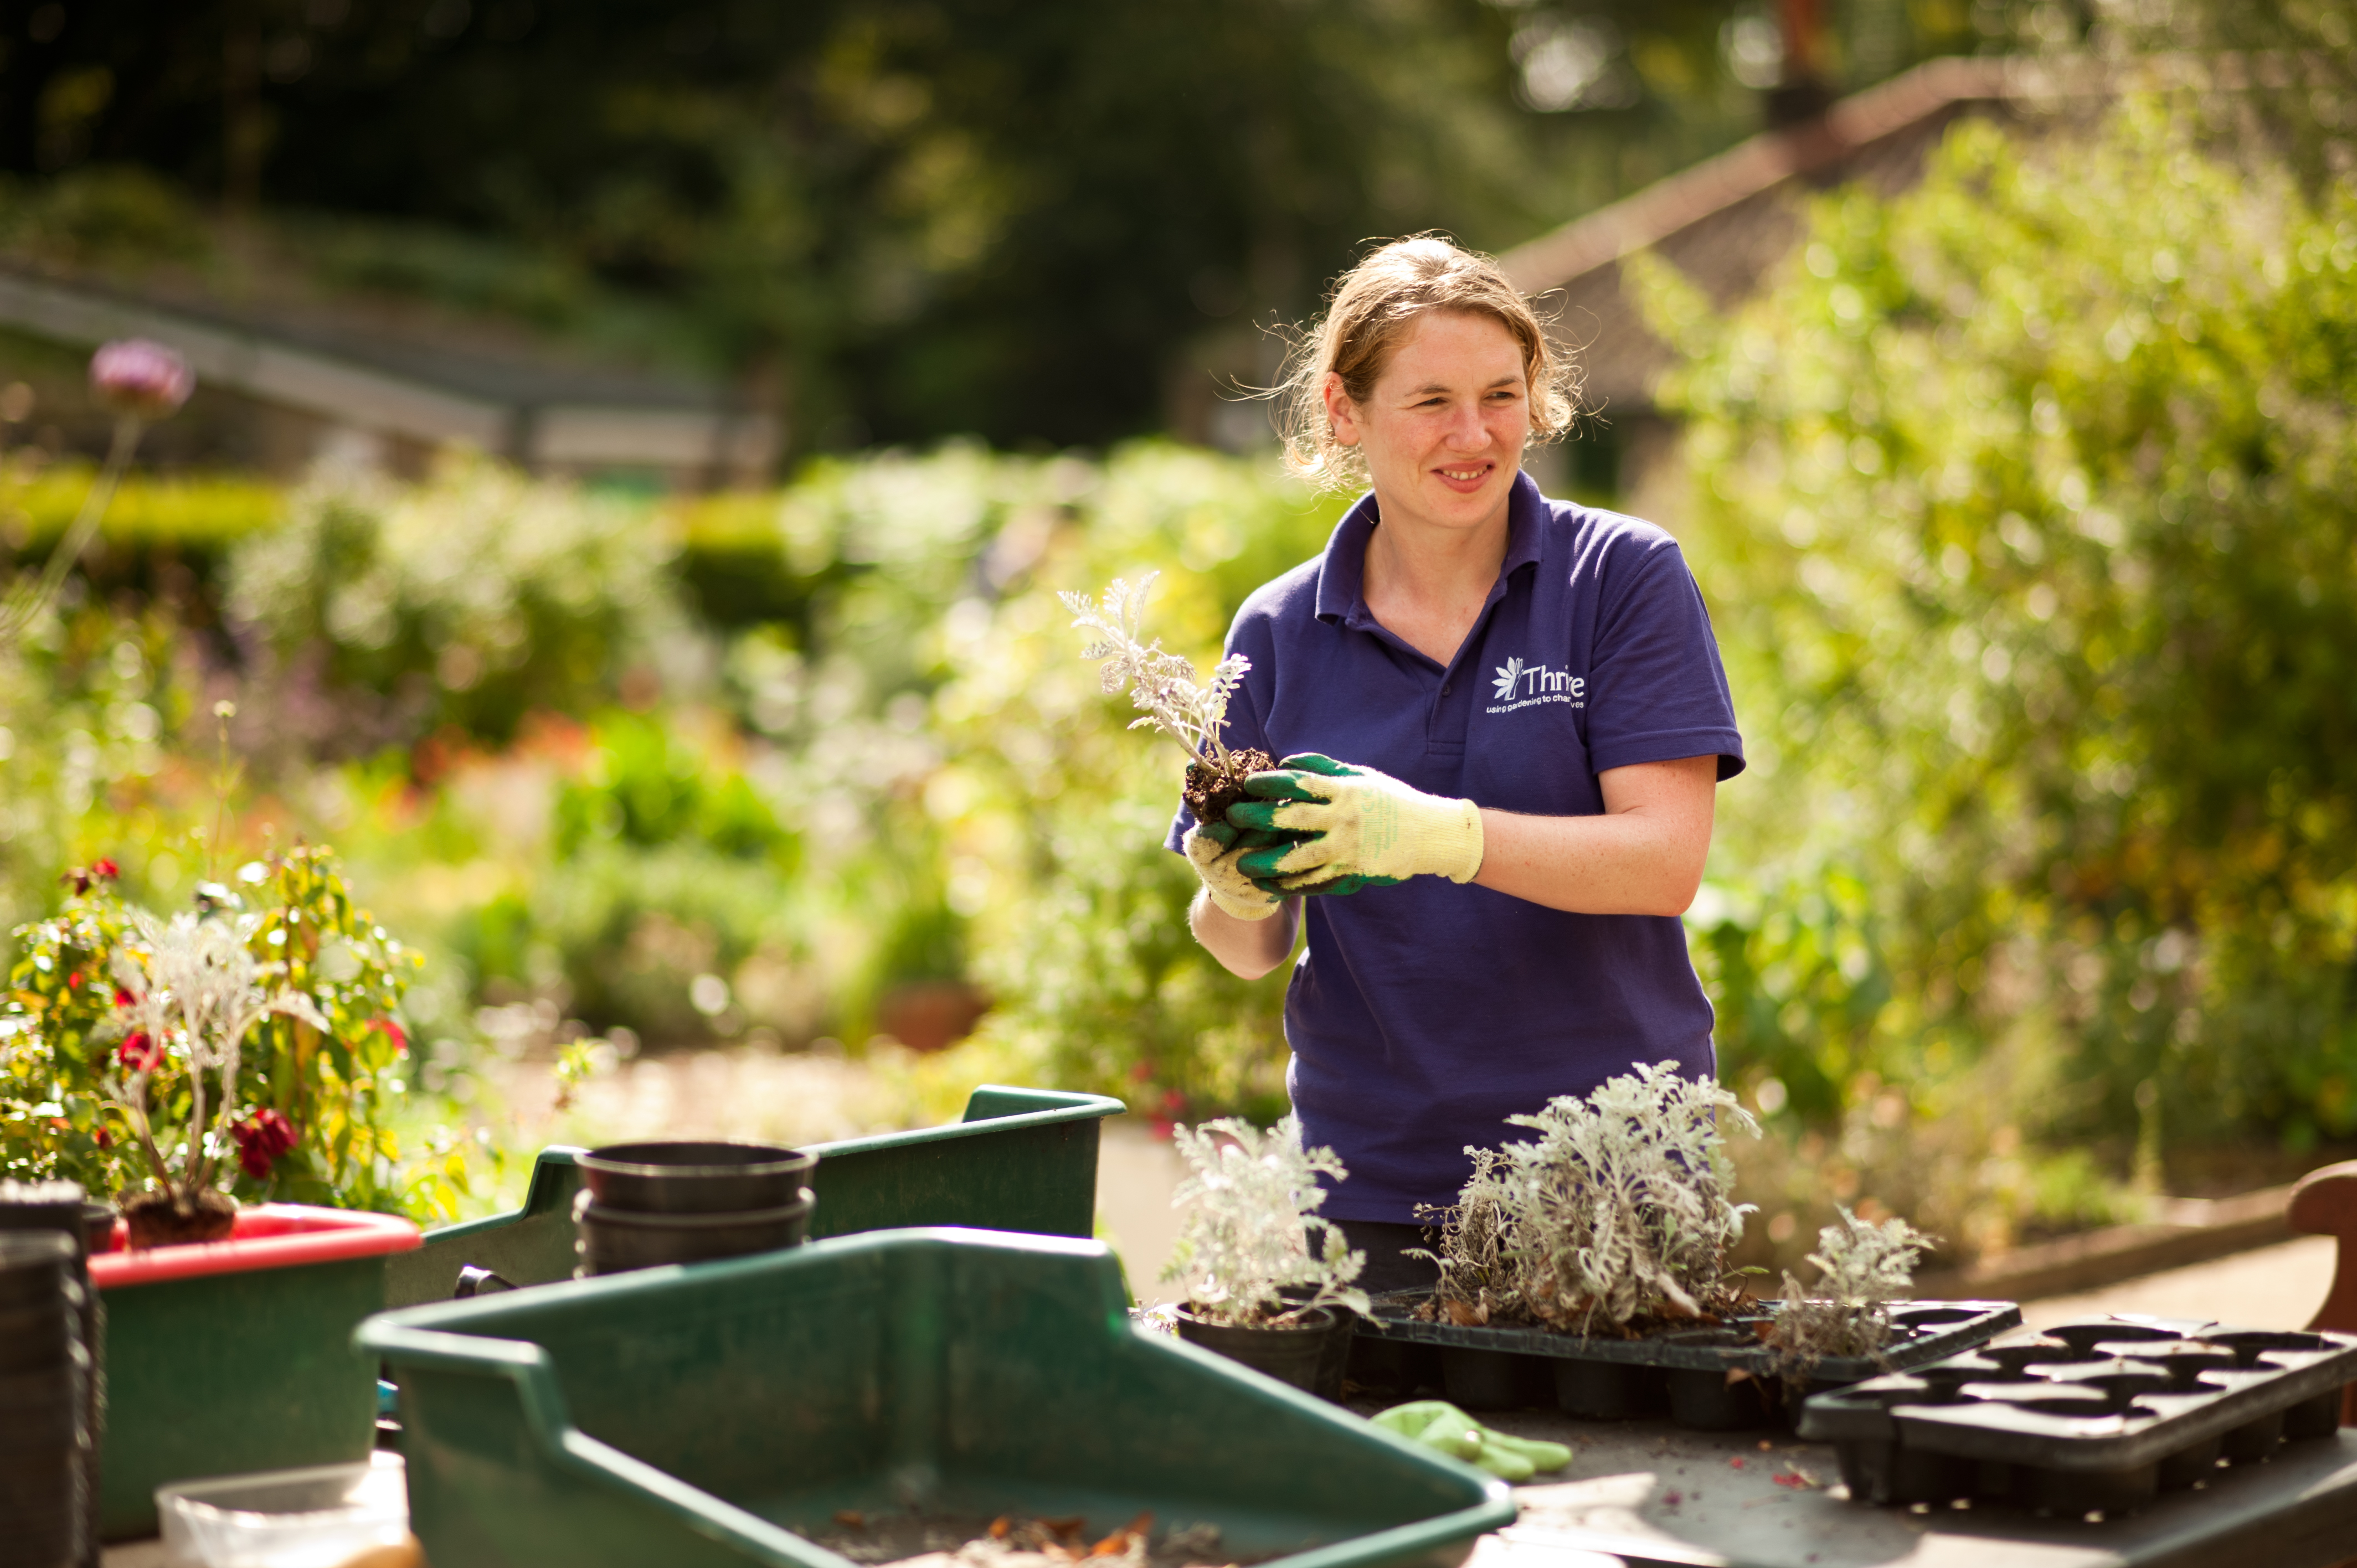 Top Tips for easier gardening